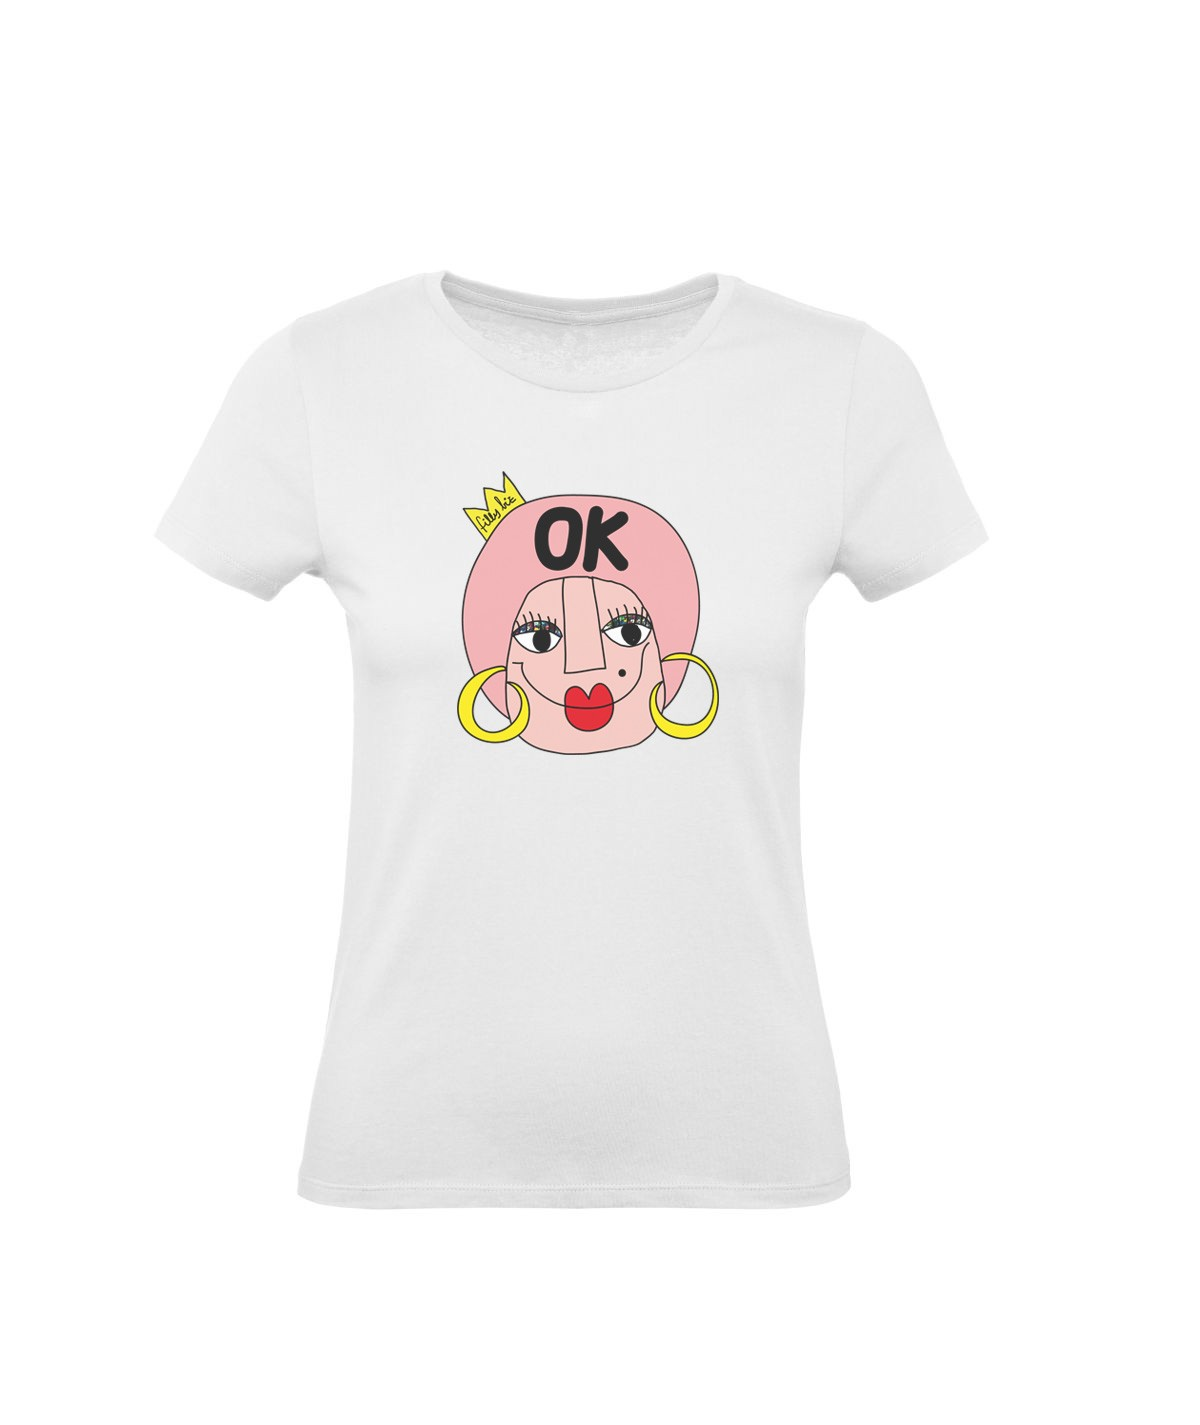 Ok ● printed t-shirt